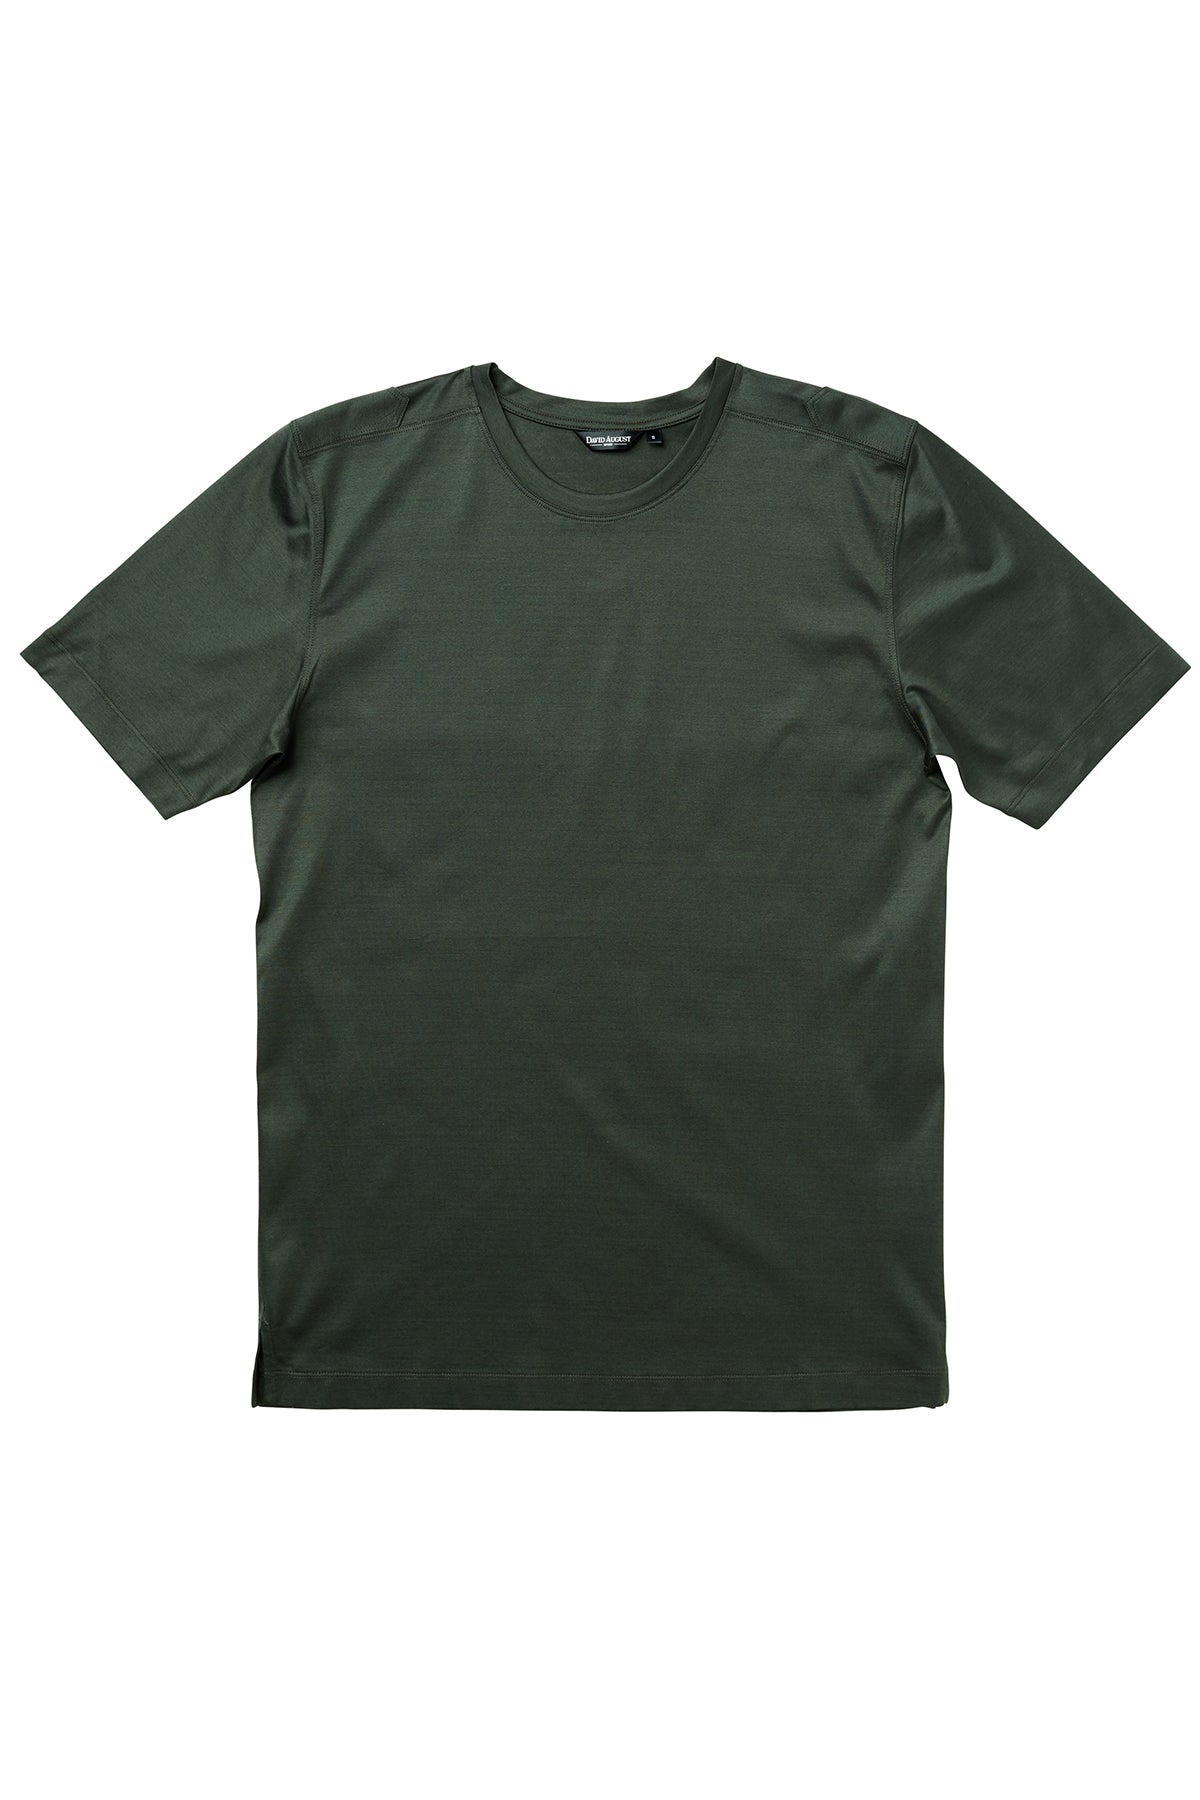 Luxury Mercerized Cotton T-Shirt Crew Neck in Olive